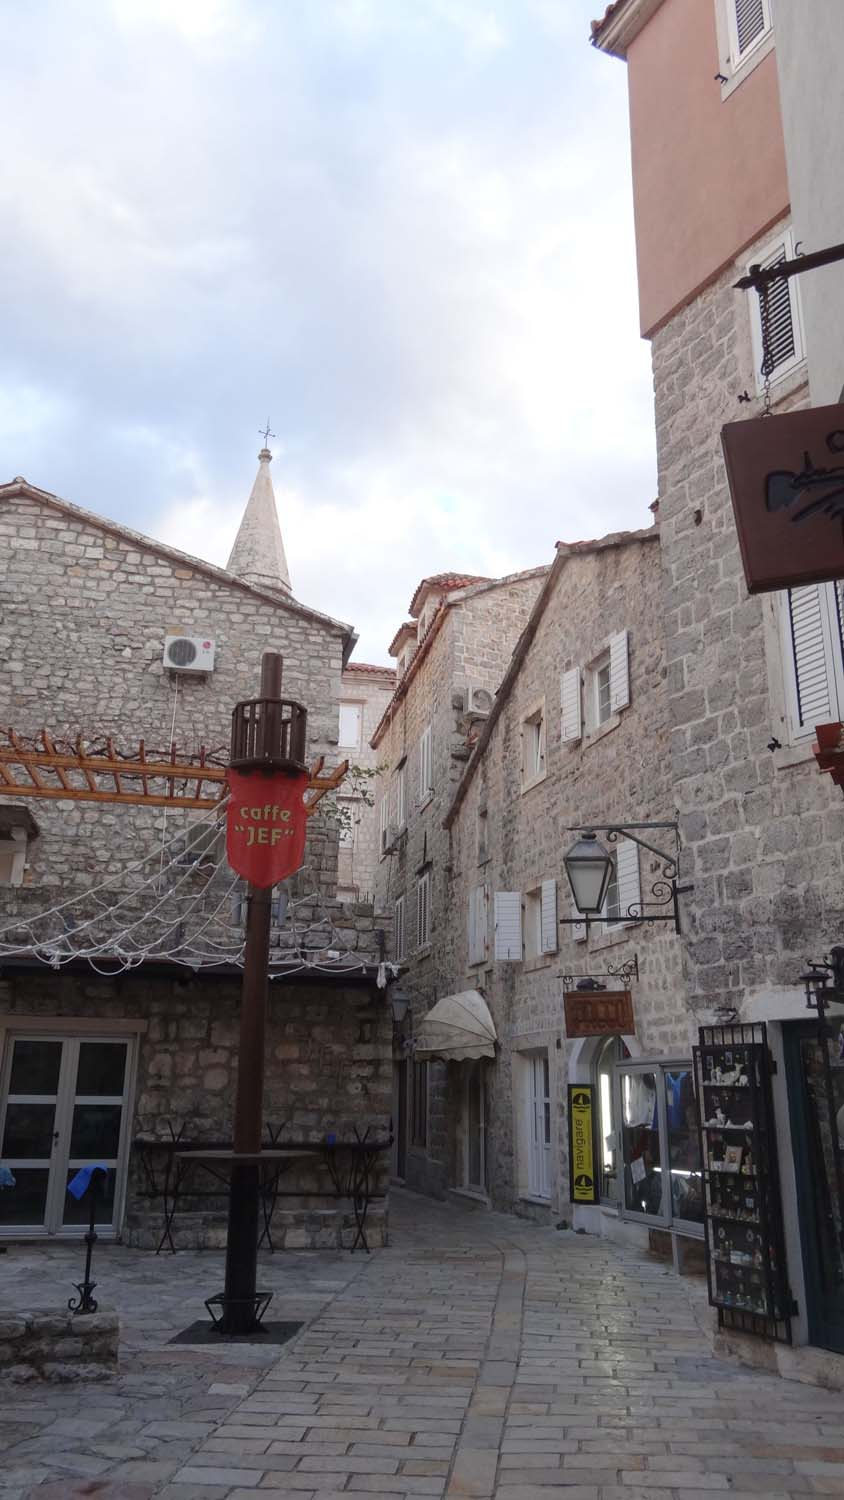 narrow deserted streets, cafes and souvenir shops - beautiful old towns of the Adriatic Coast